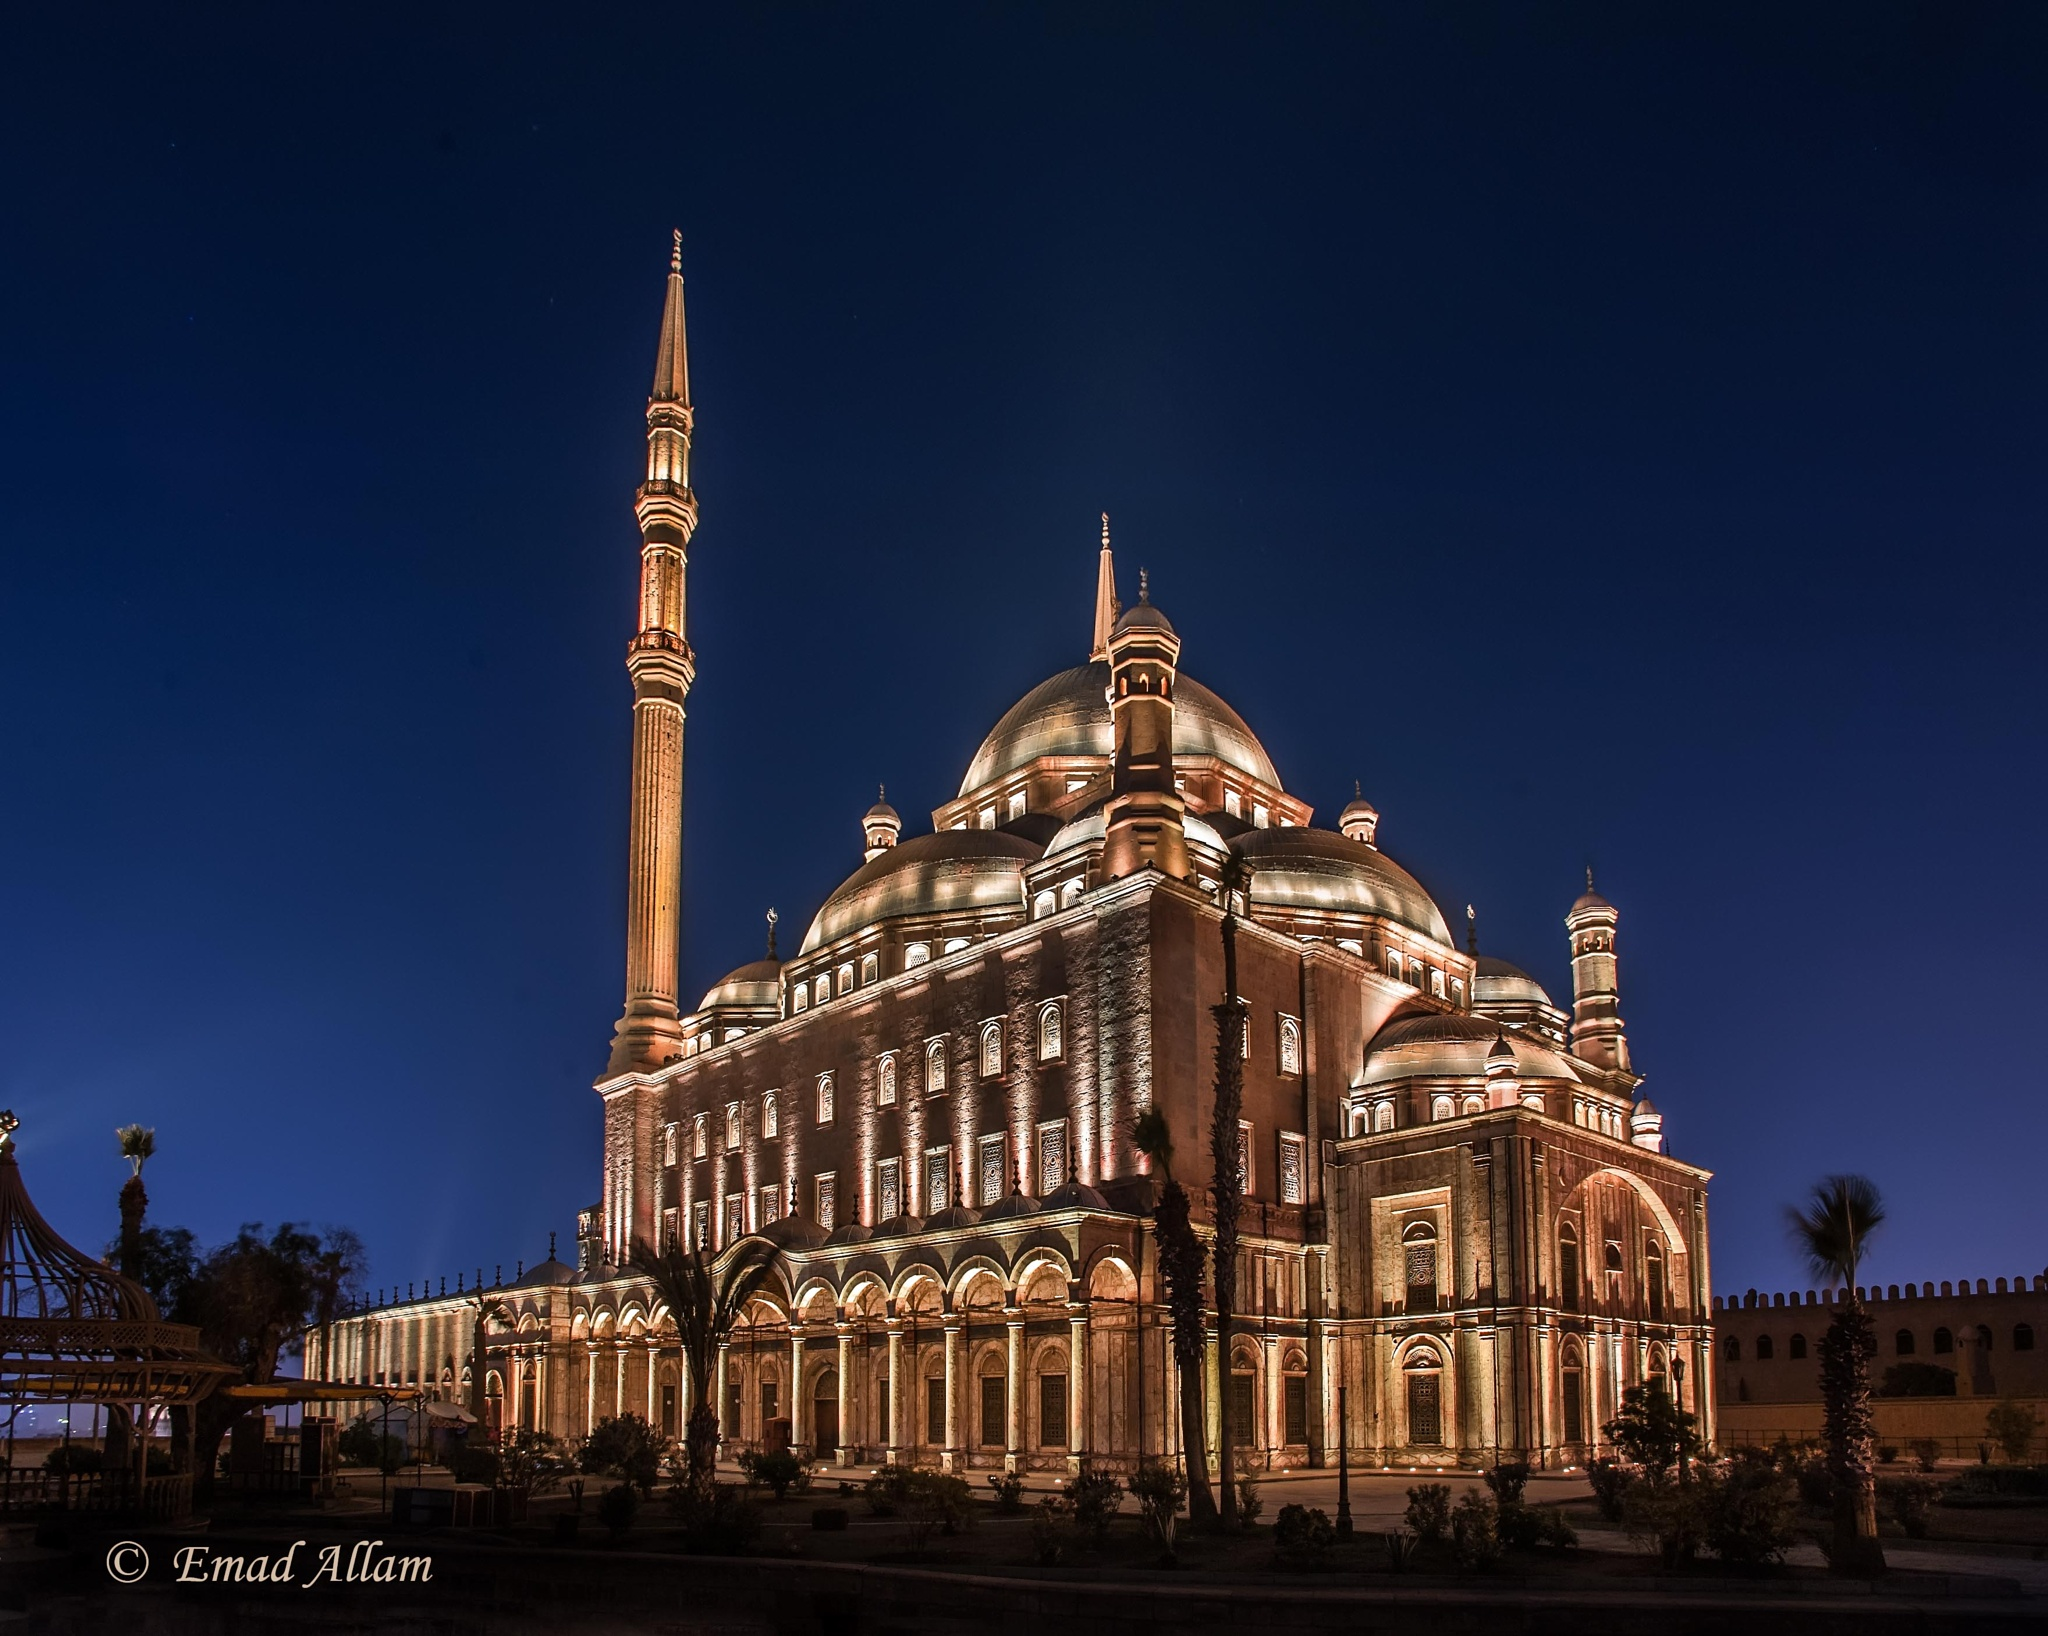 Untitled by Emad Allam